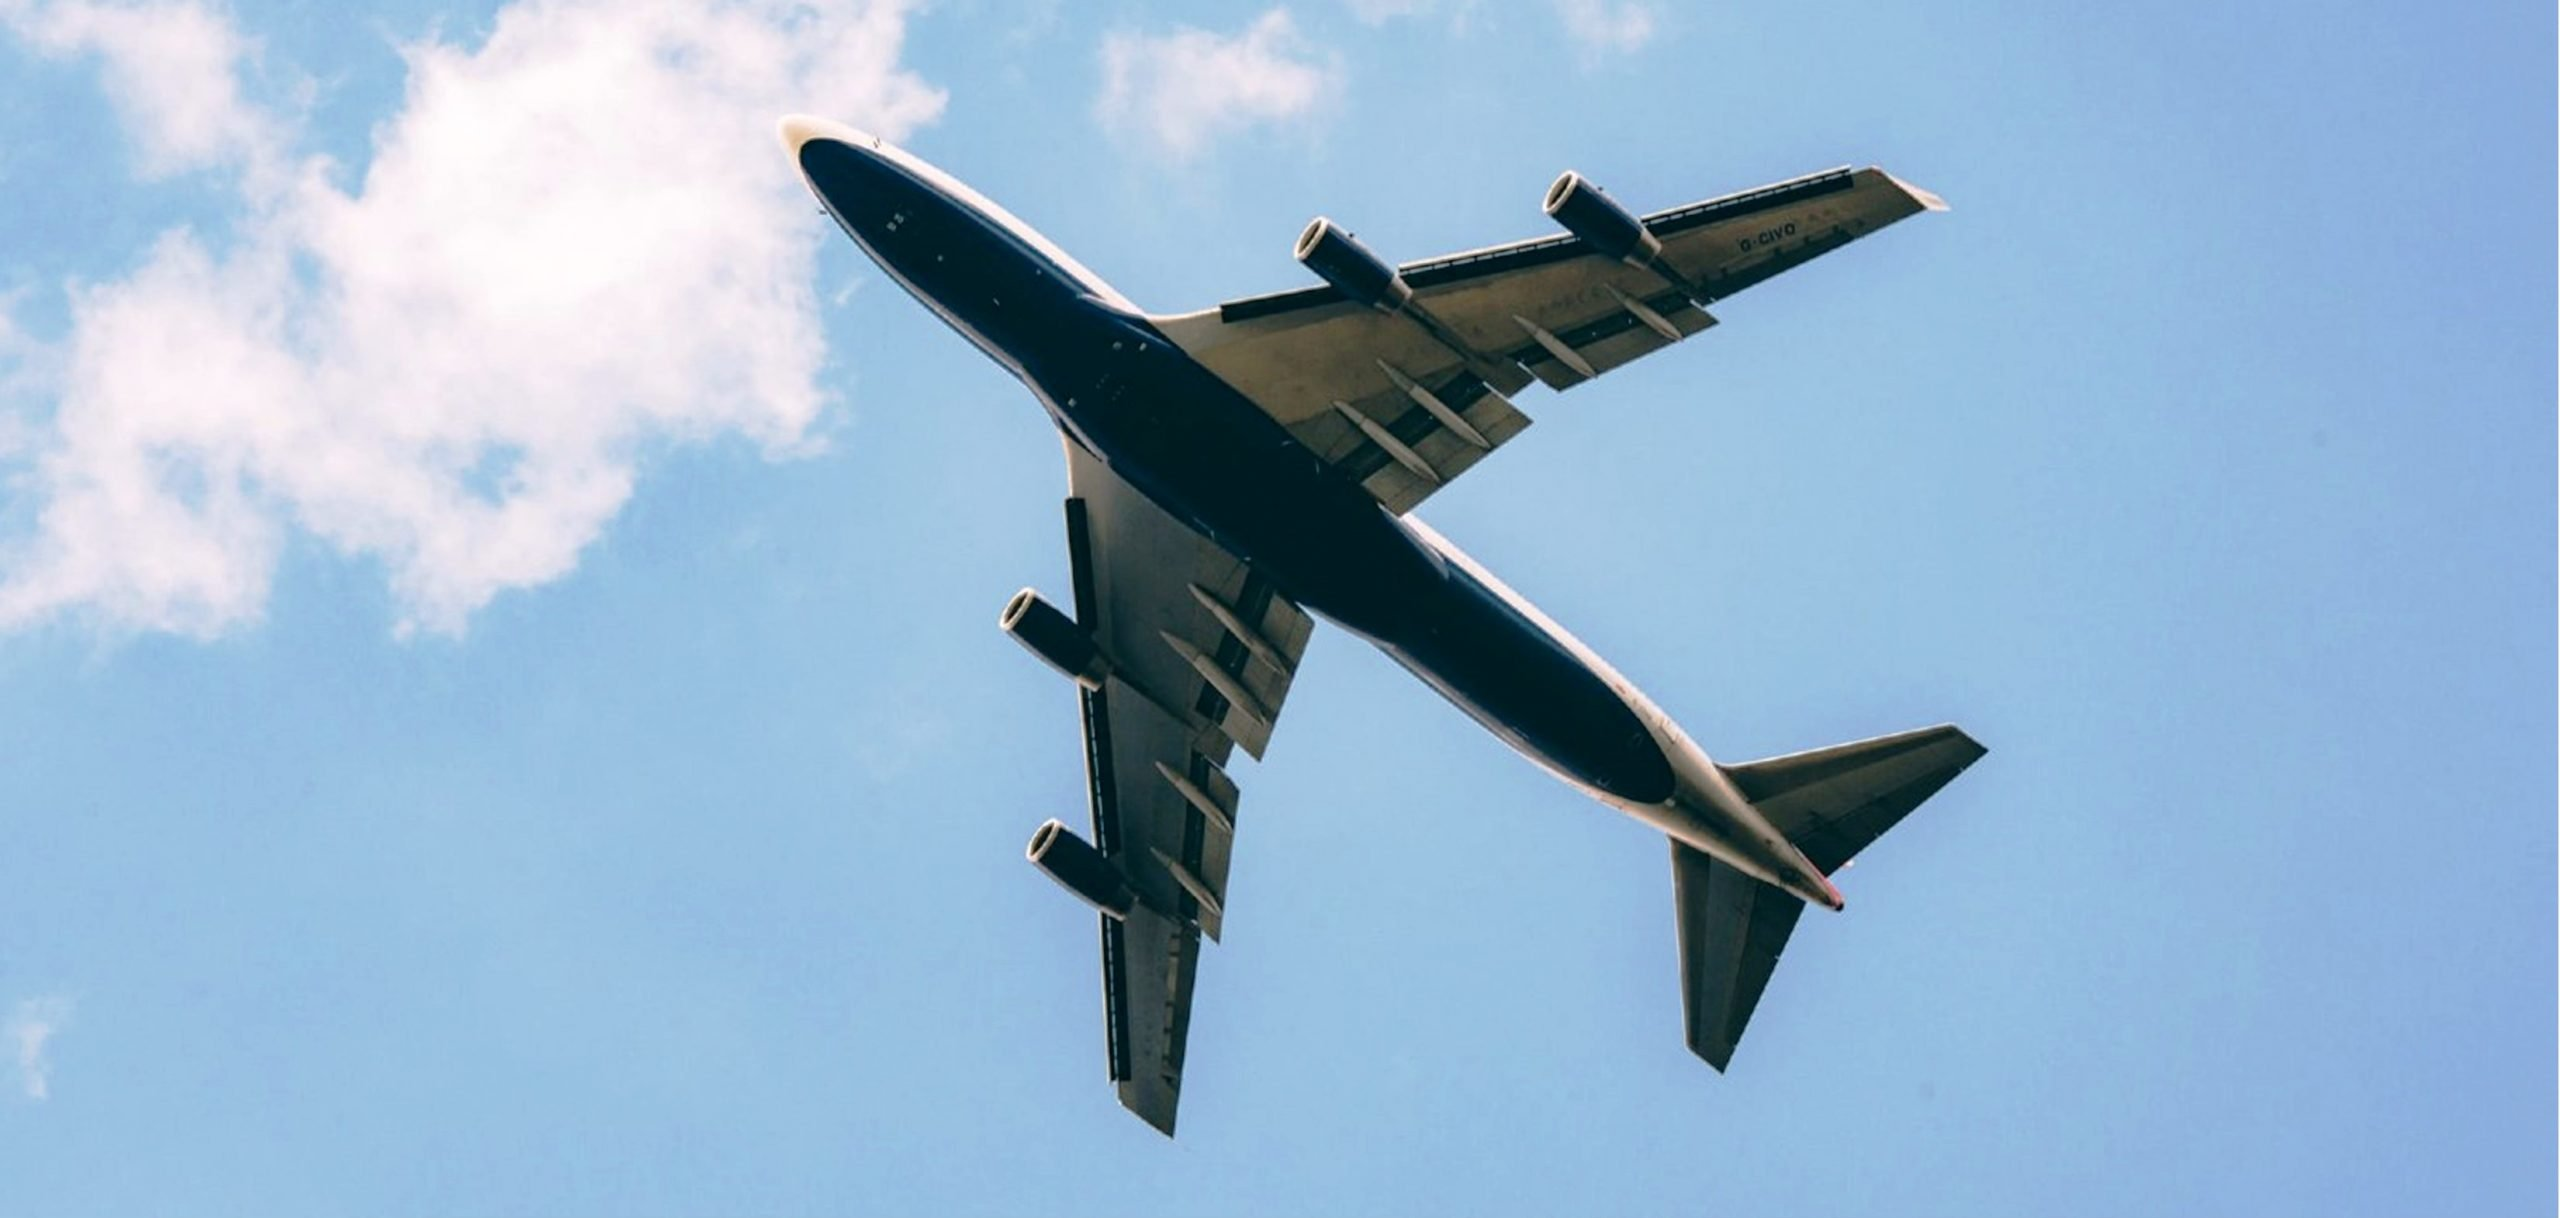 Photograph of an airplane flying overhead.